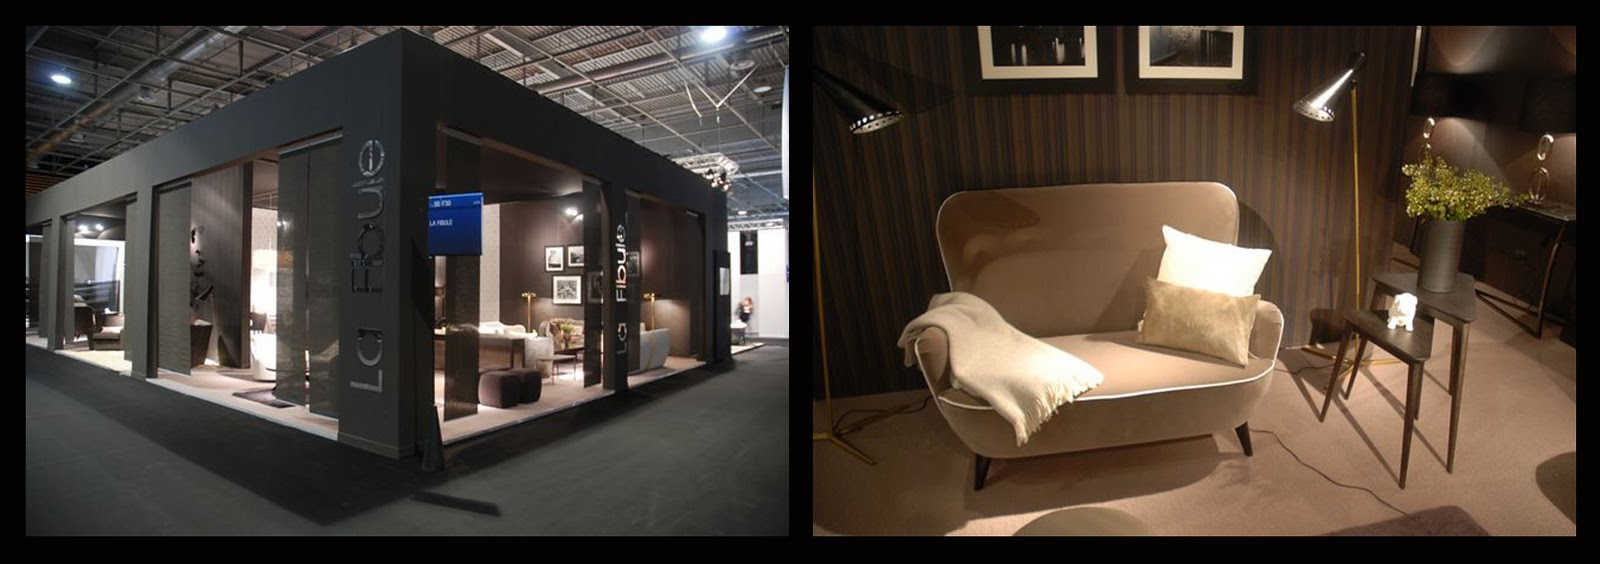 Black is great but black white is better hello peagreen - Expo maison et objet ...